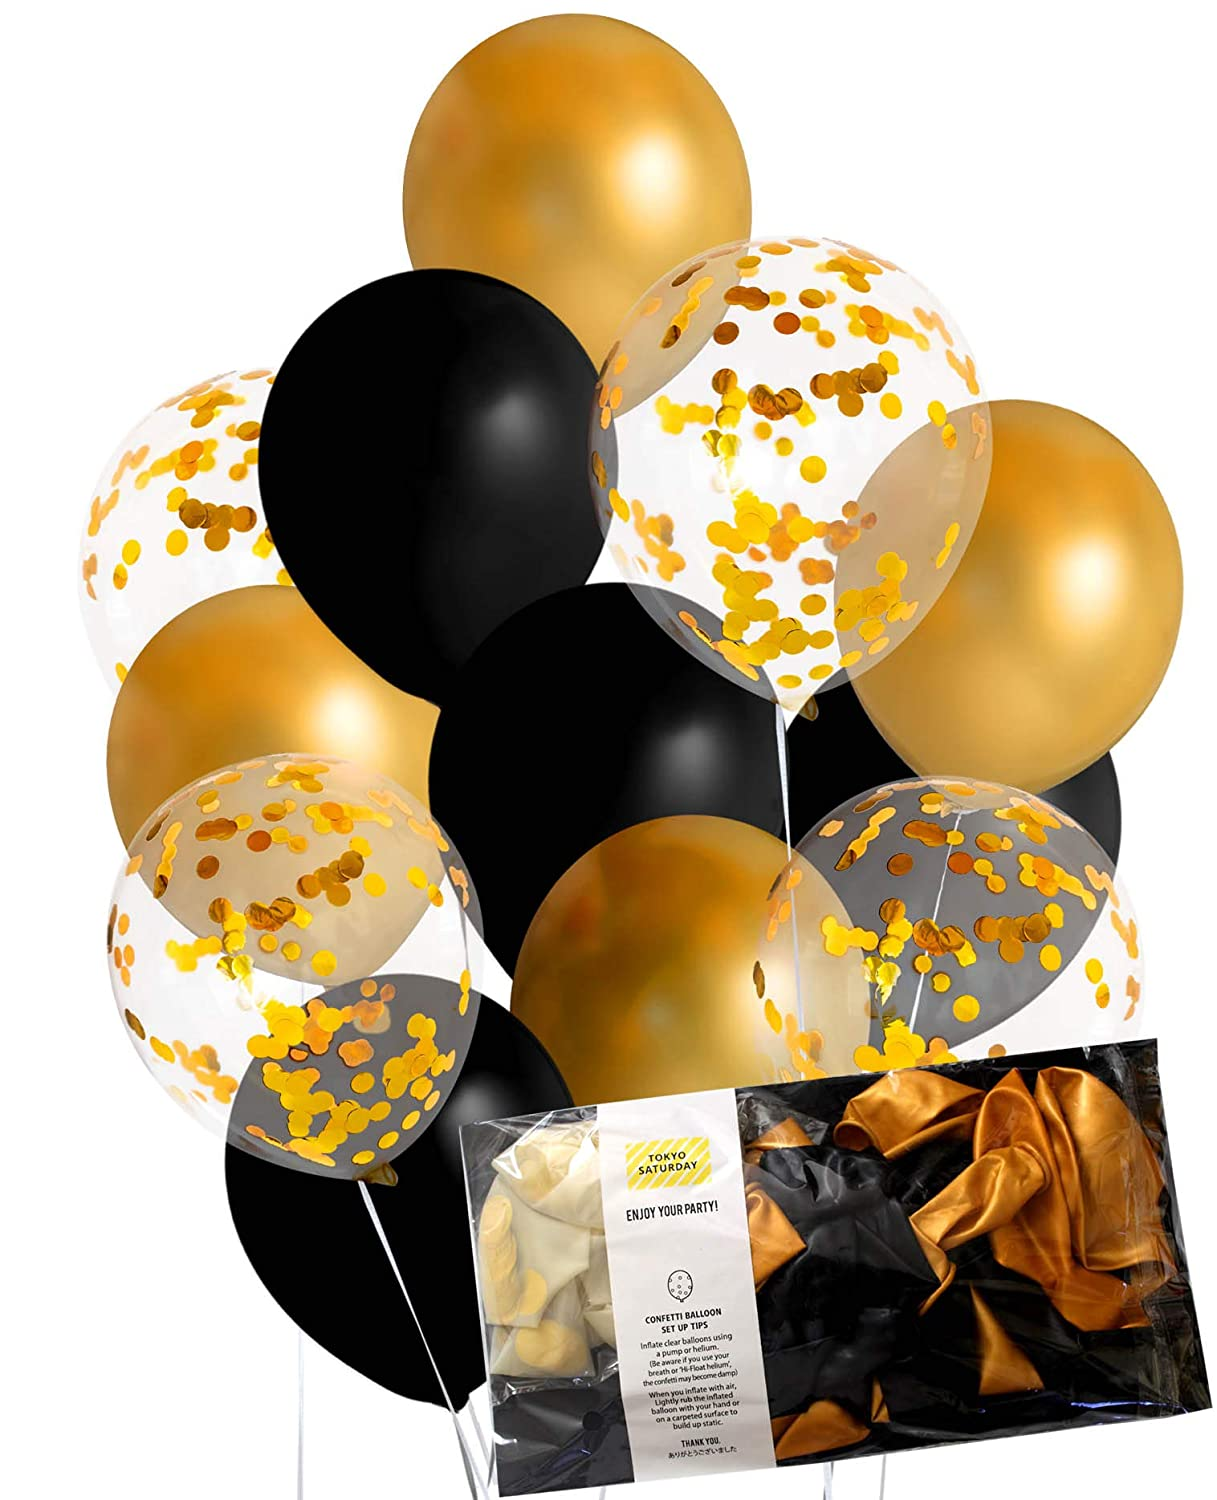 TOKYO SATURDAY Shiny Finish Gold And Black Confetti Balloon Party Decoration 20pcs 12 Clear Balloons With For Wedding Birthday Construction